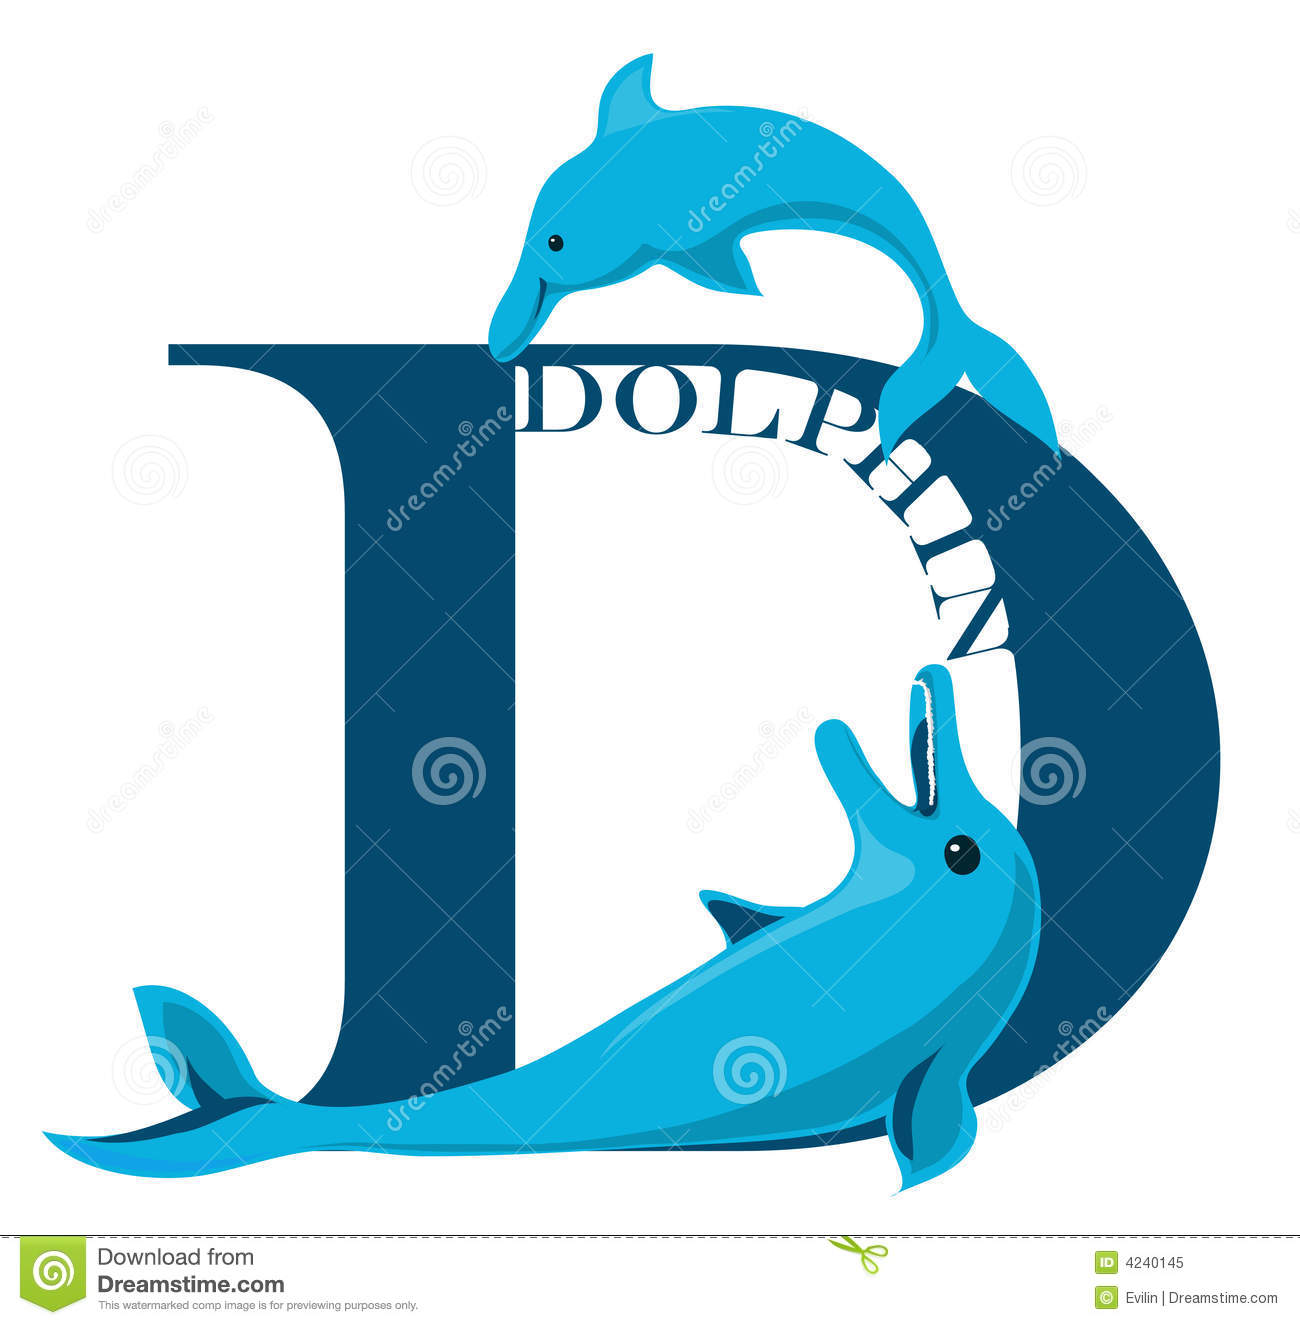 Letter d dolphin stock vector illustration of char 4240145 download letter d dolphin stock vector illustration of char 4240145 altavistaventures Image collections